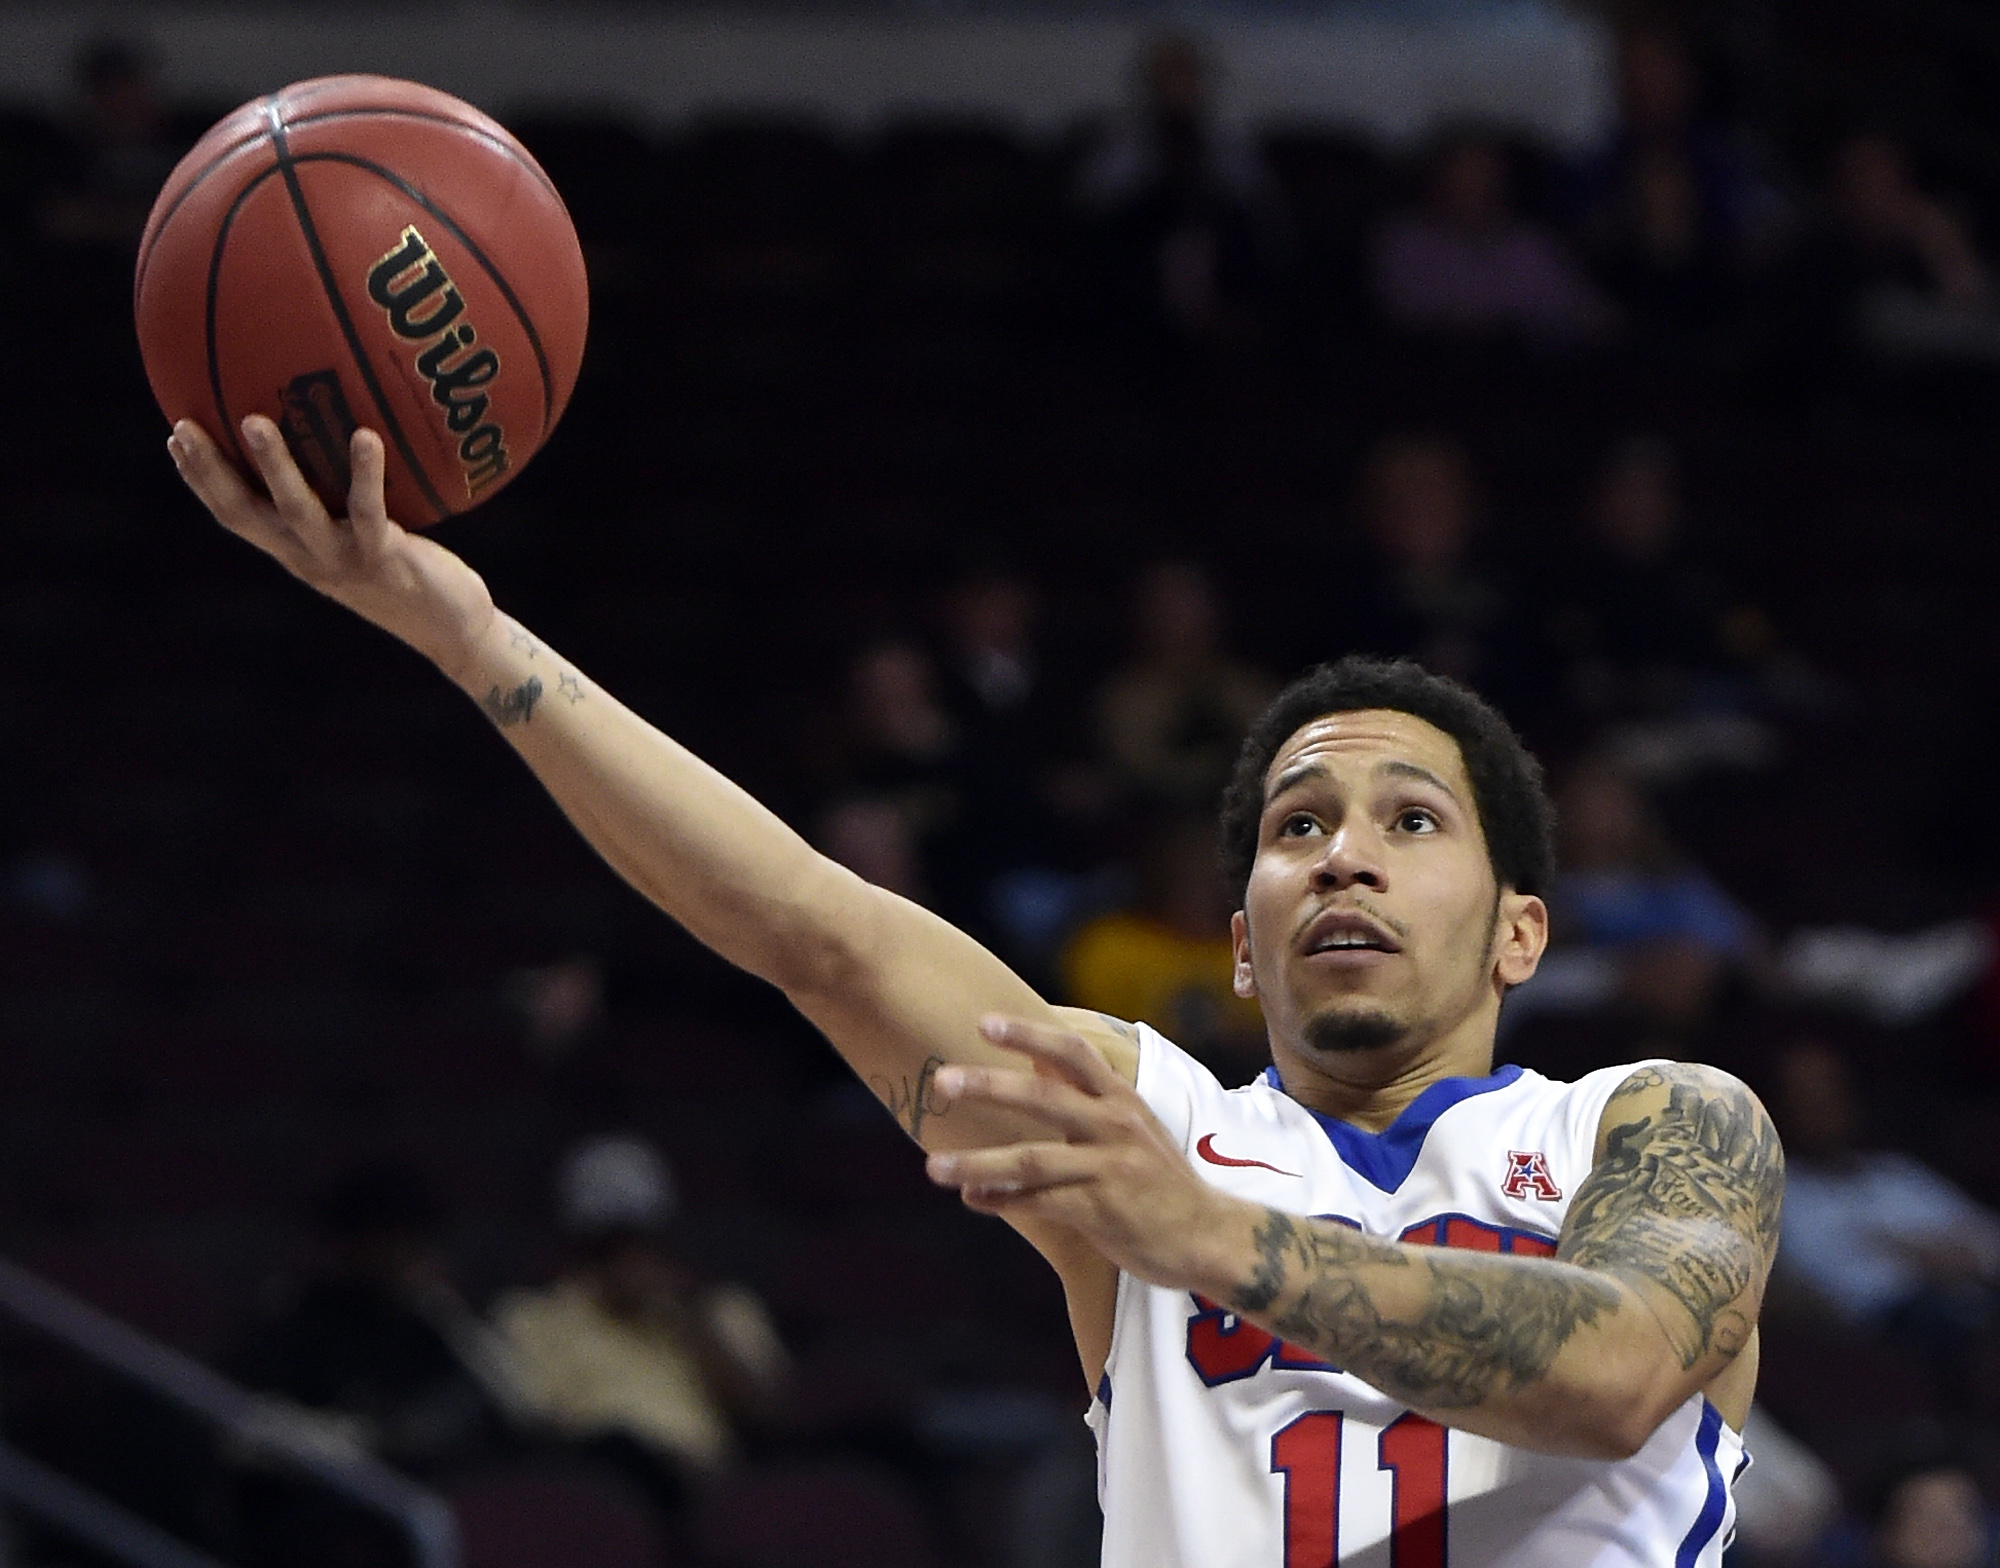 SMU guard Nic Moore shoots against Colorado during the first half of an NCAA college basketball game Wednesday, Dec. 23, 2015, in Las Vegas. (AP Photo/David Becker)